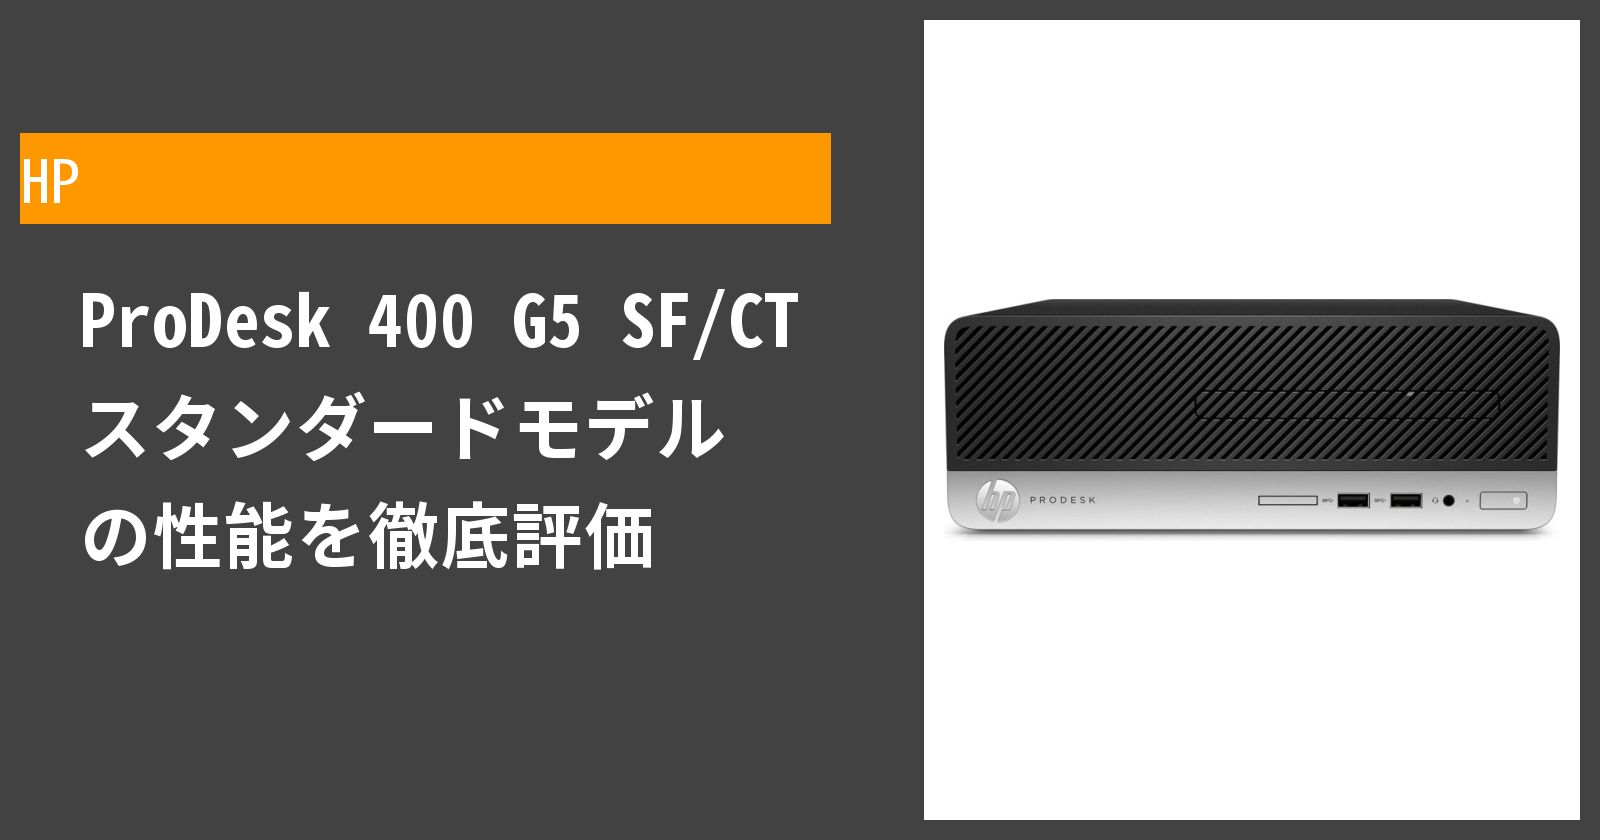 ProDesk 400 G5 SF/CT の性能を徹底評価